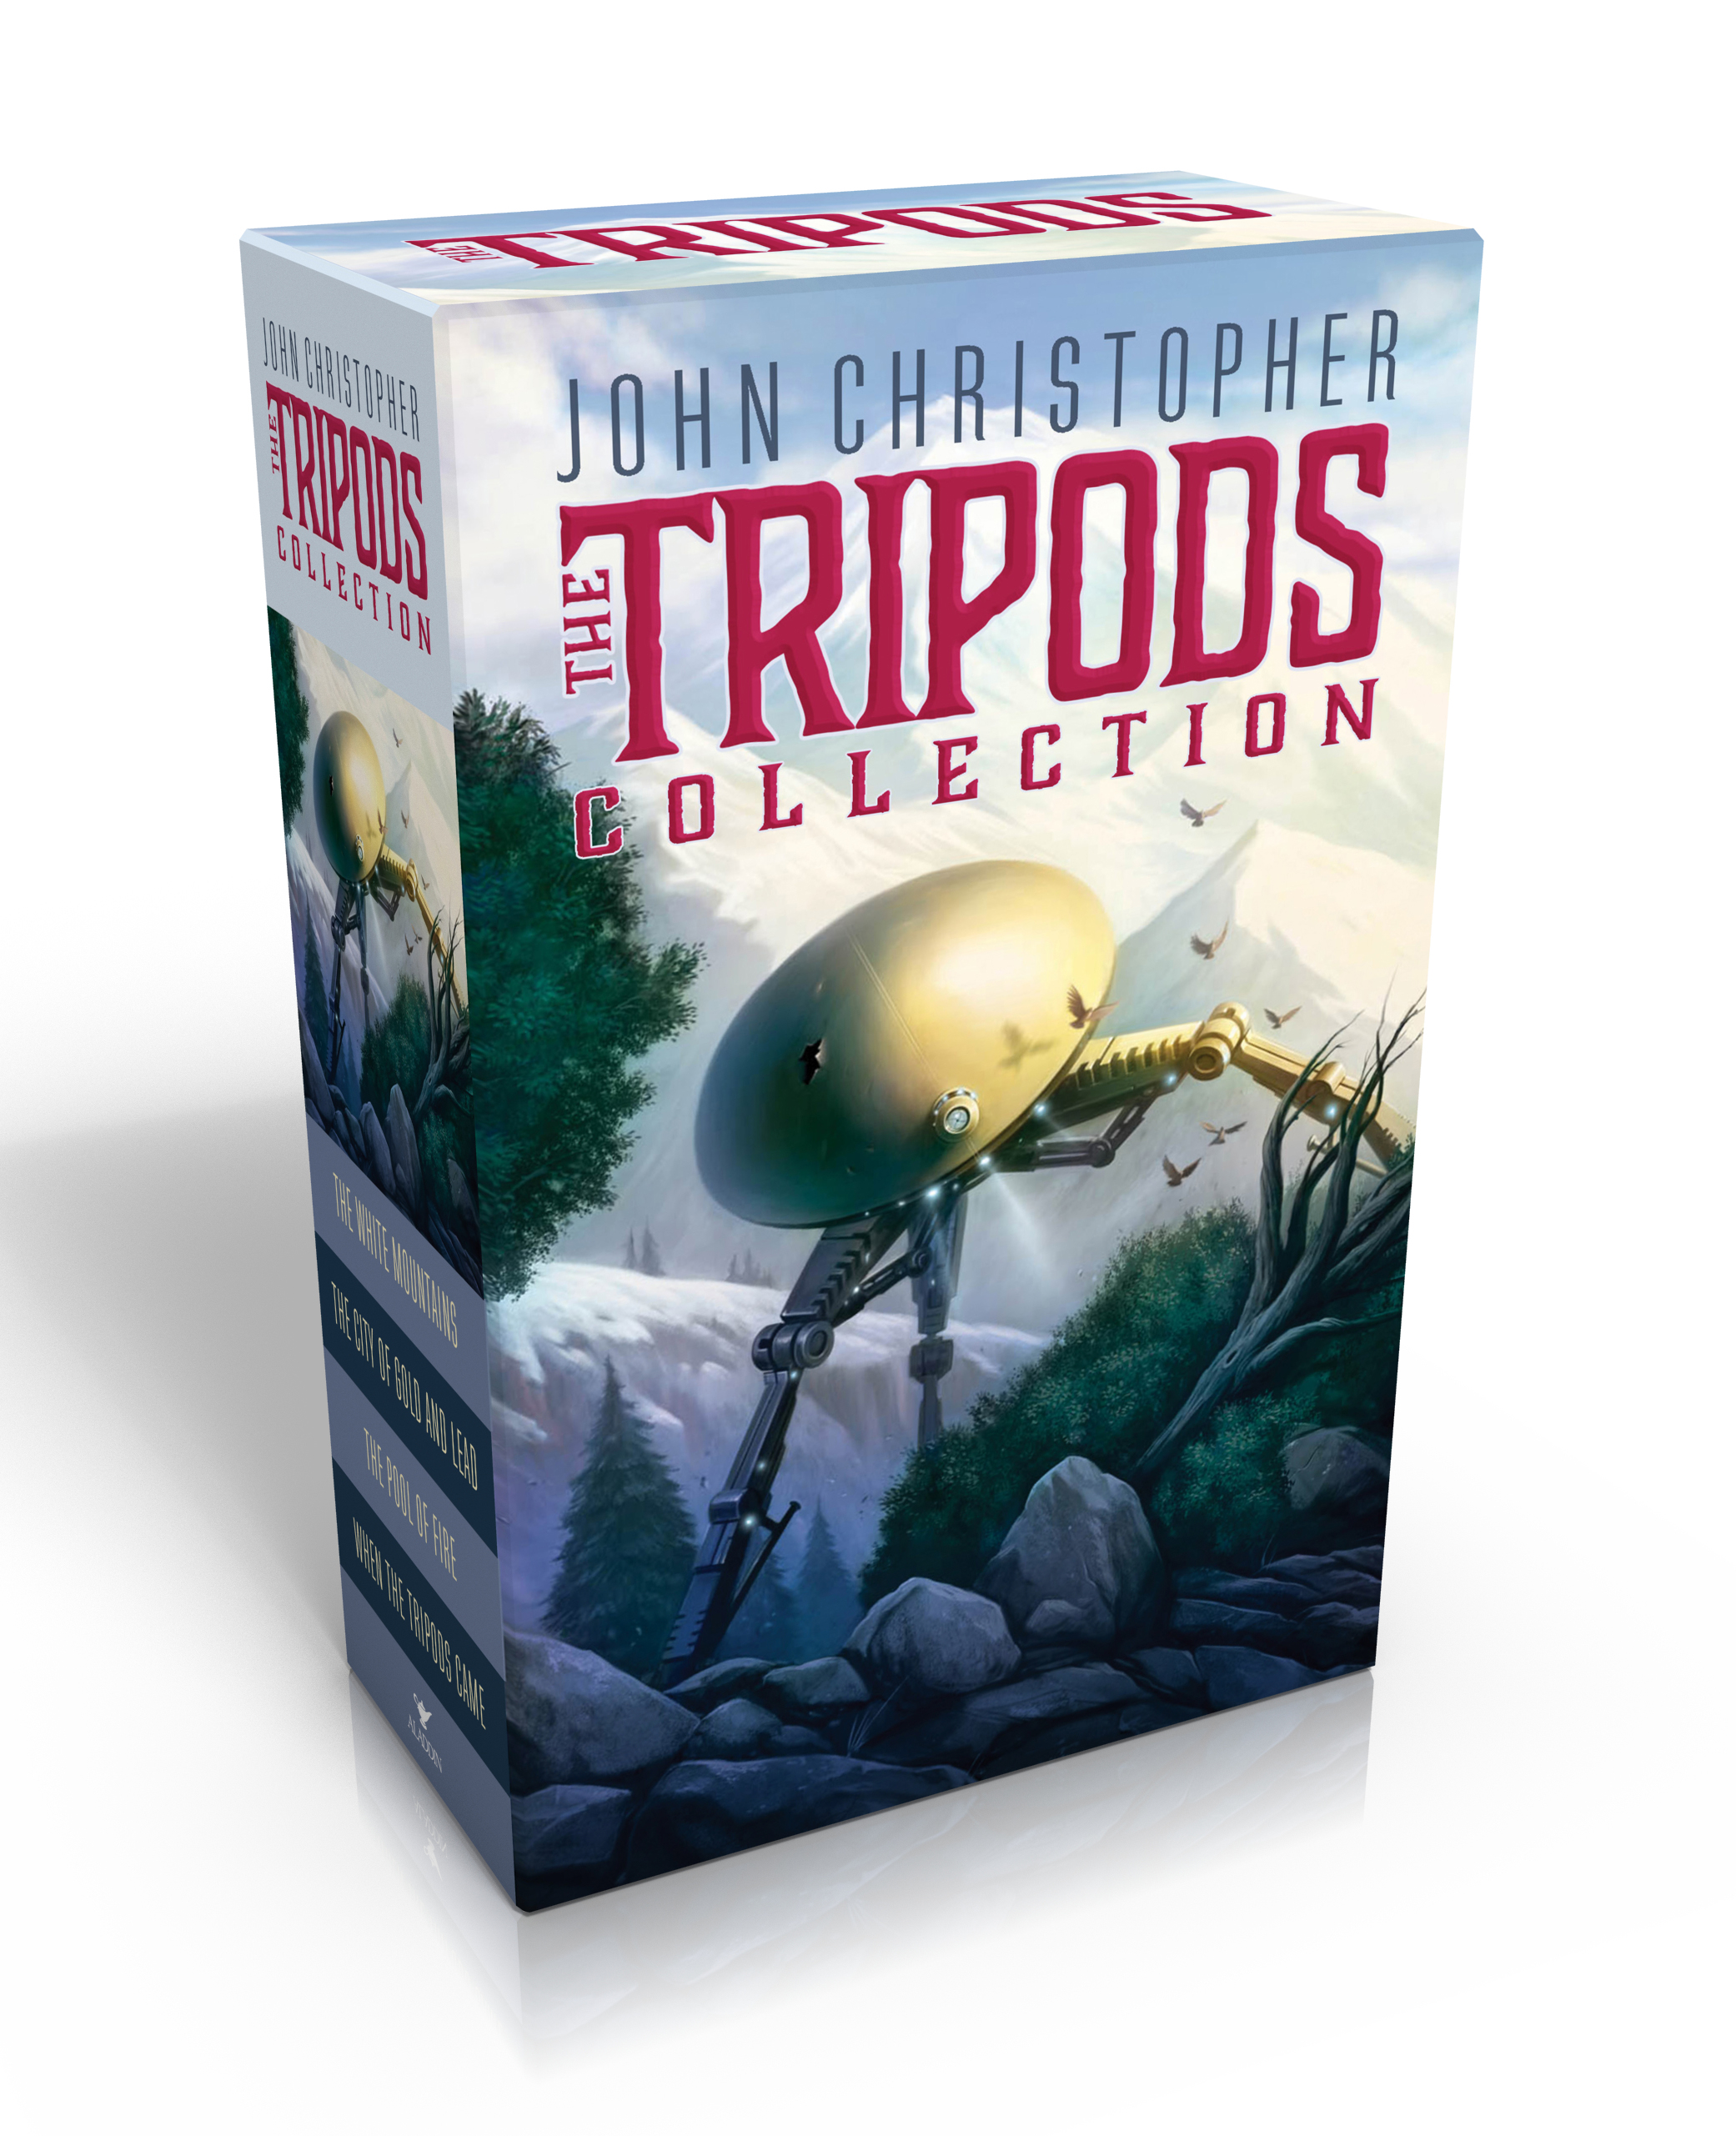 Book Cover Image (jpg): The Tripods Collection